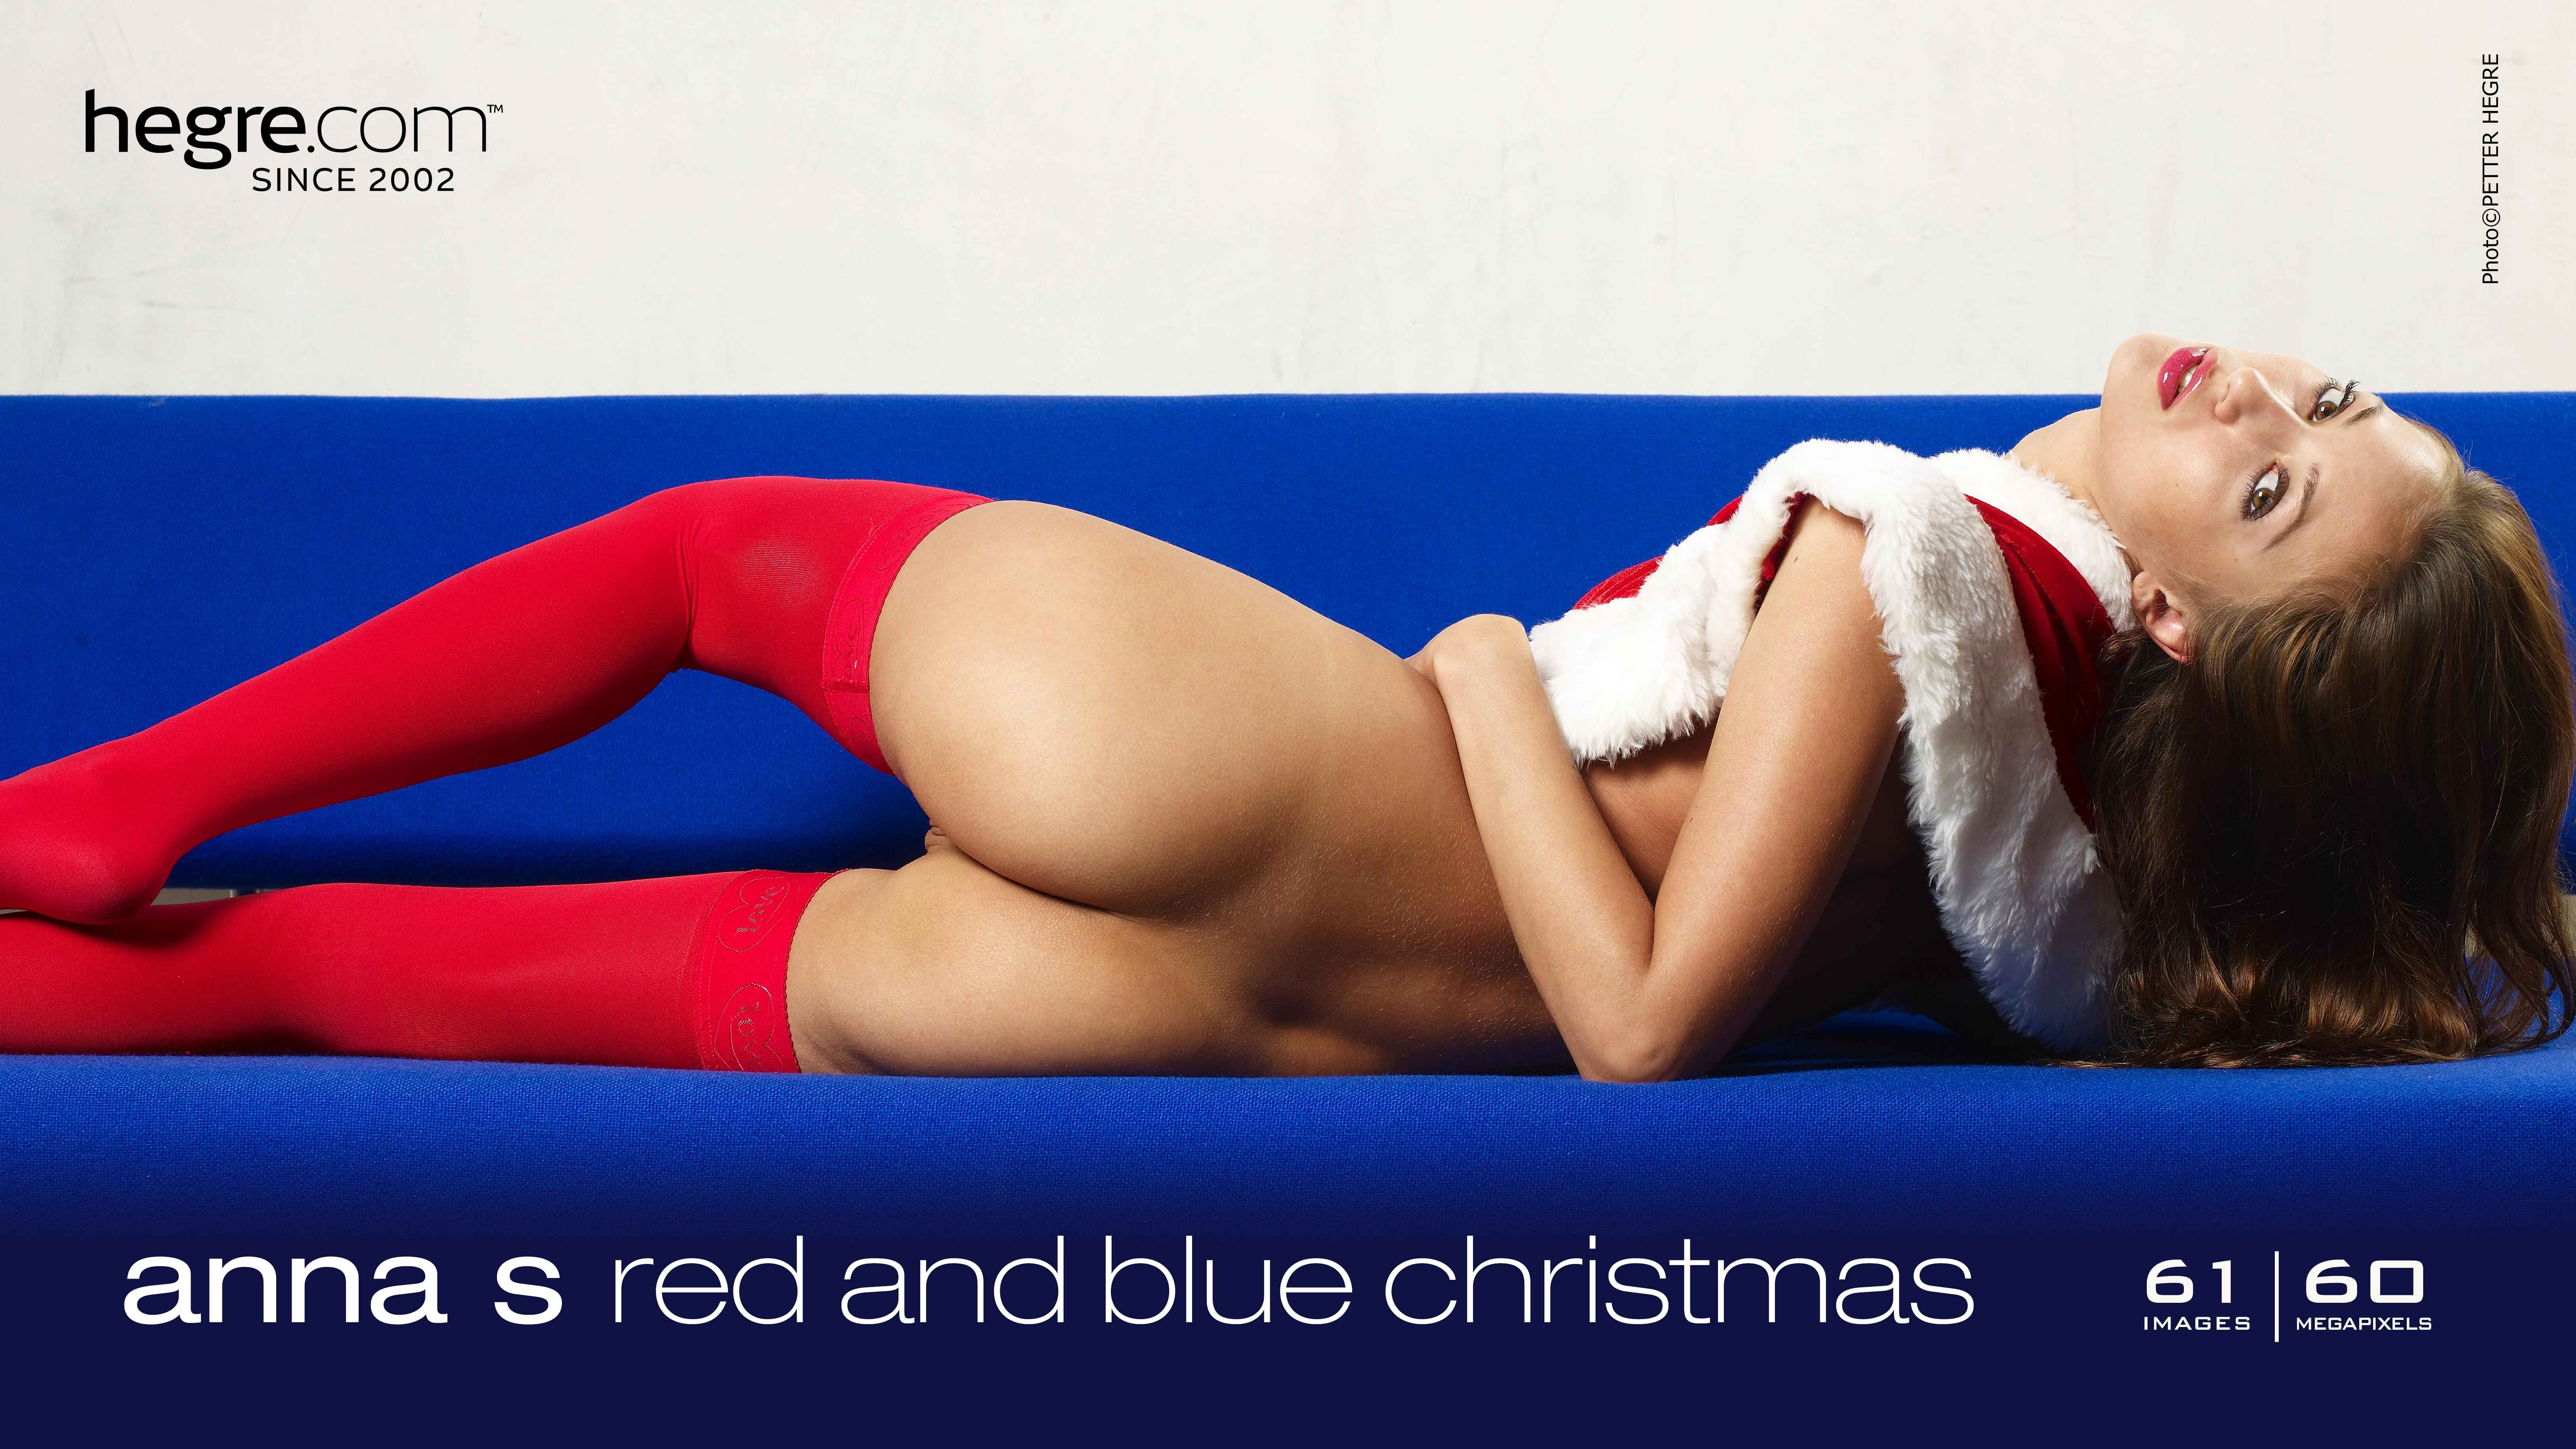 Anna S red and blue christmas